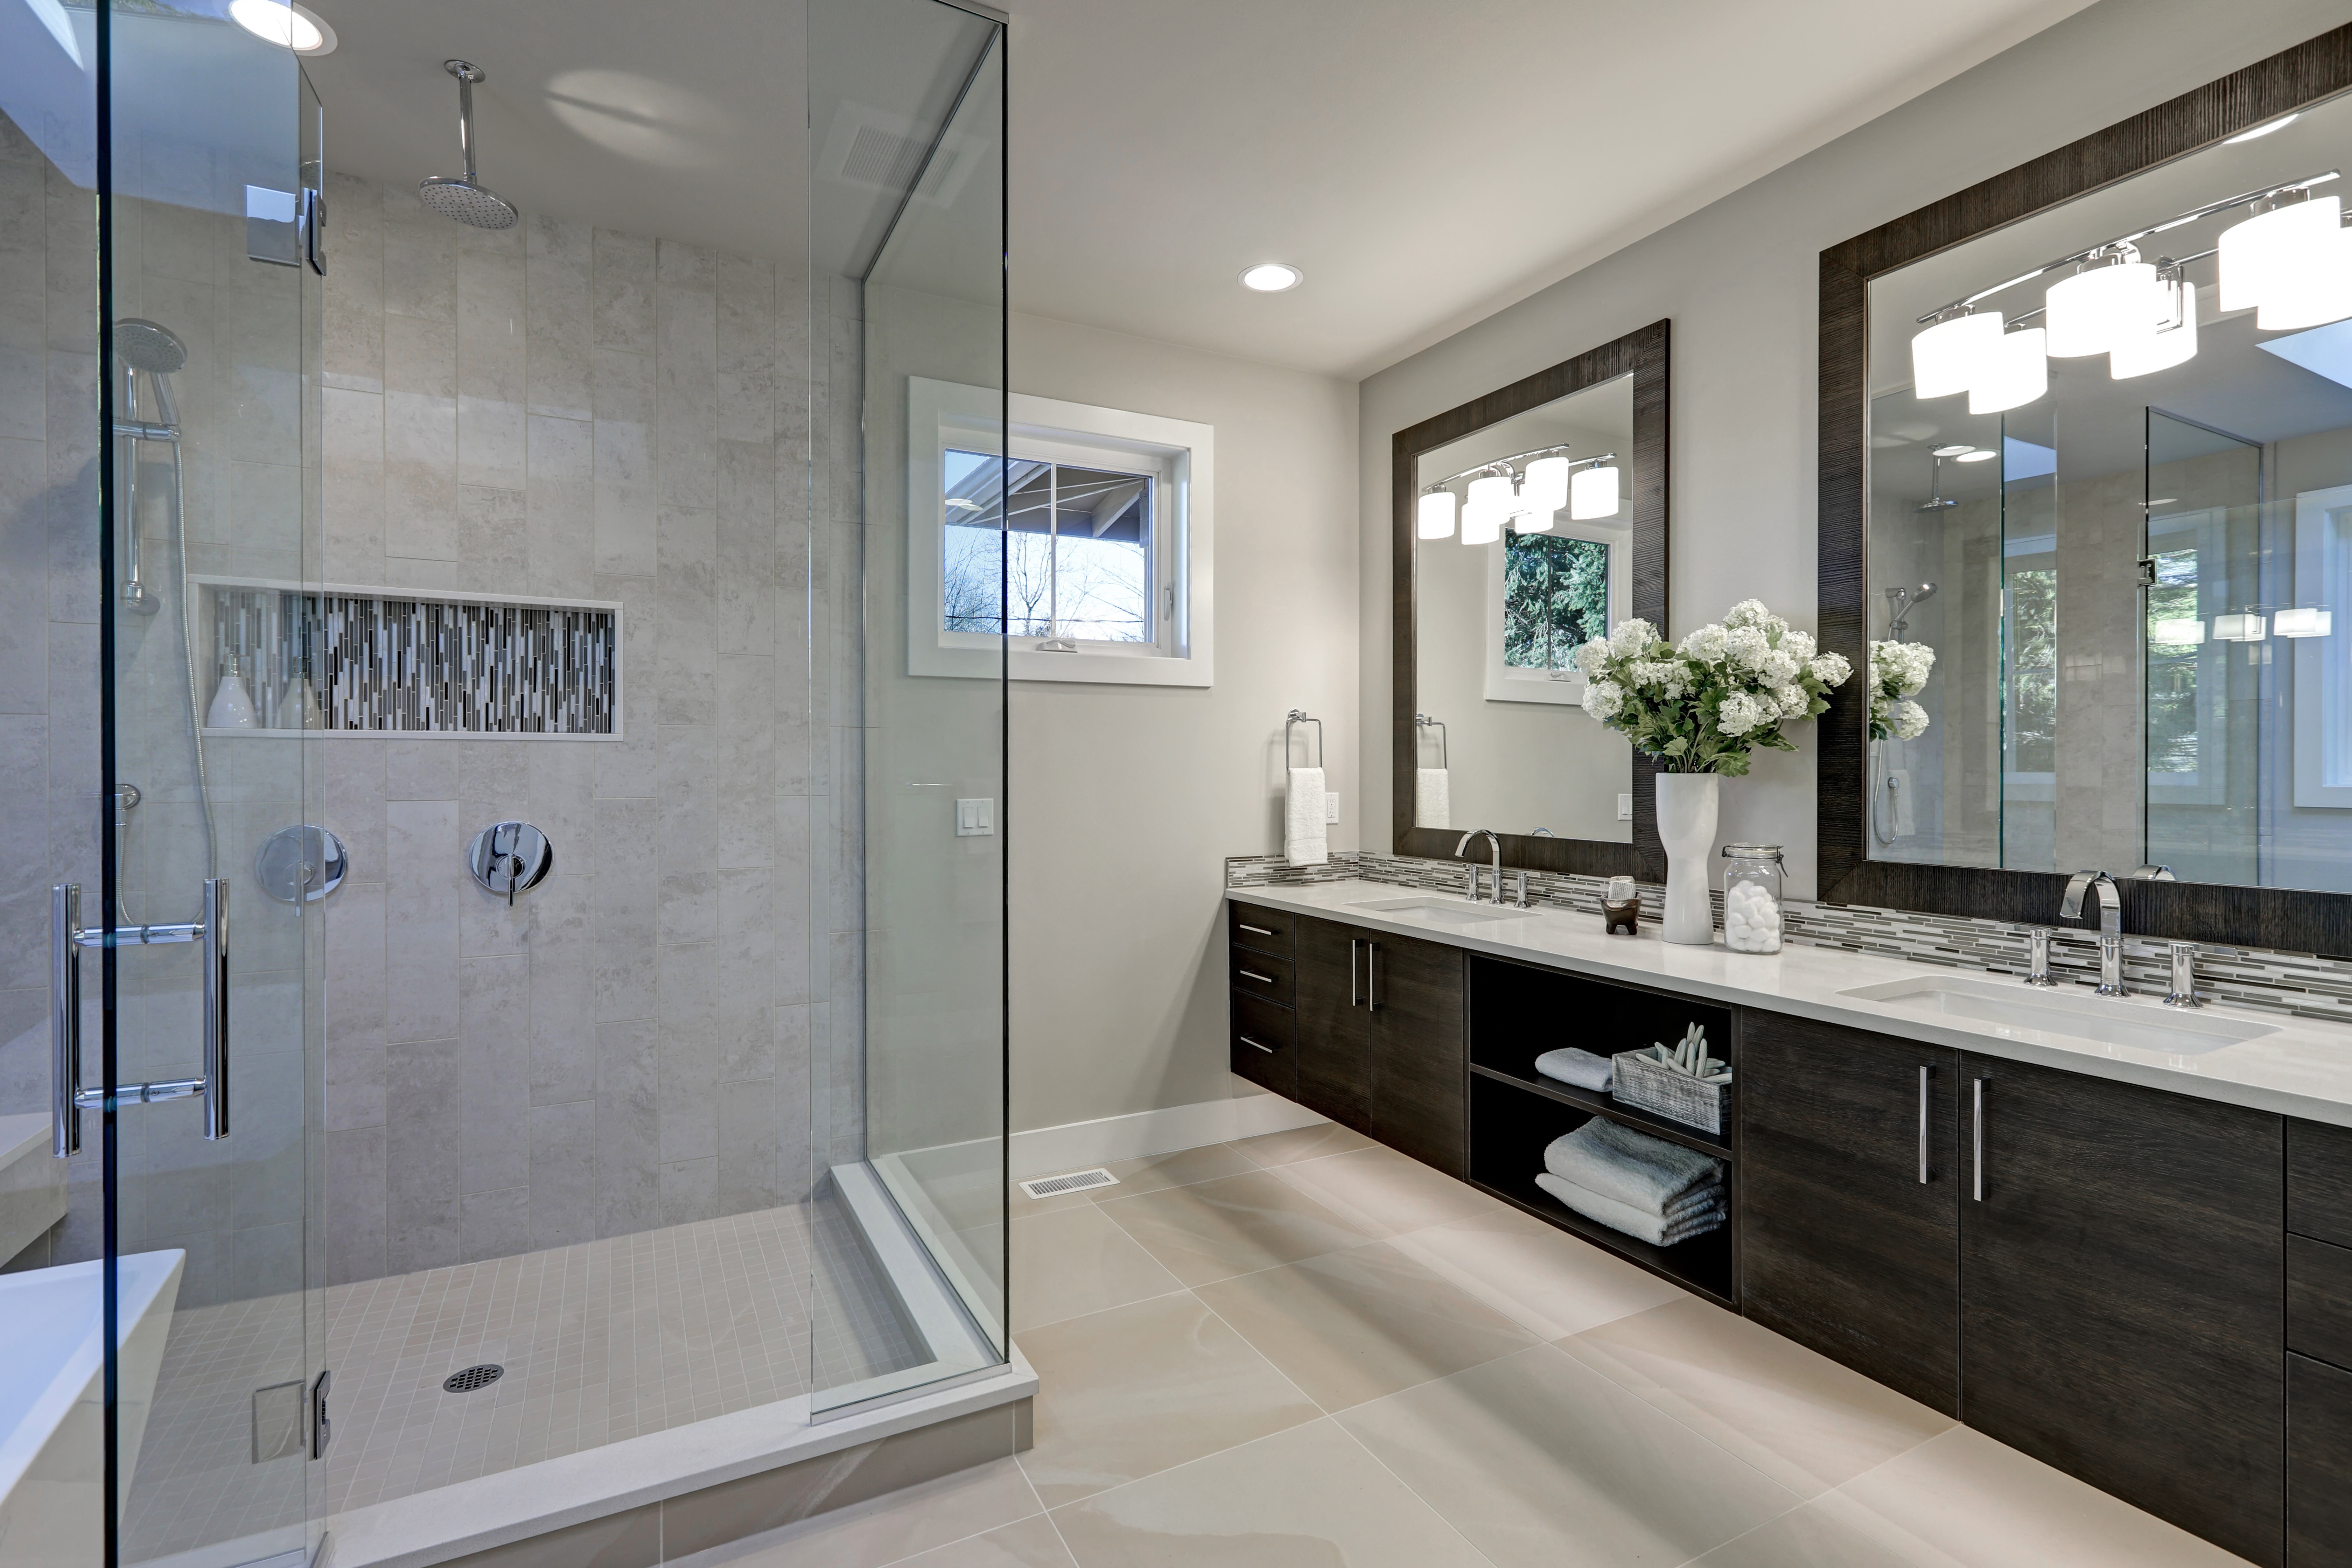 Mountainwoodhomes Author At Mountainwood Homes Page Of - Bathroom remodel beaverton oregon